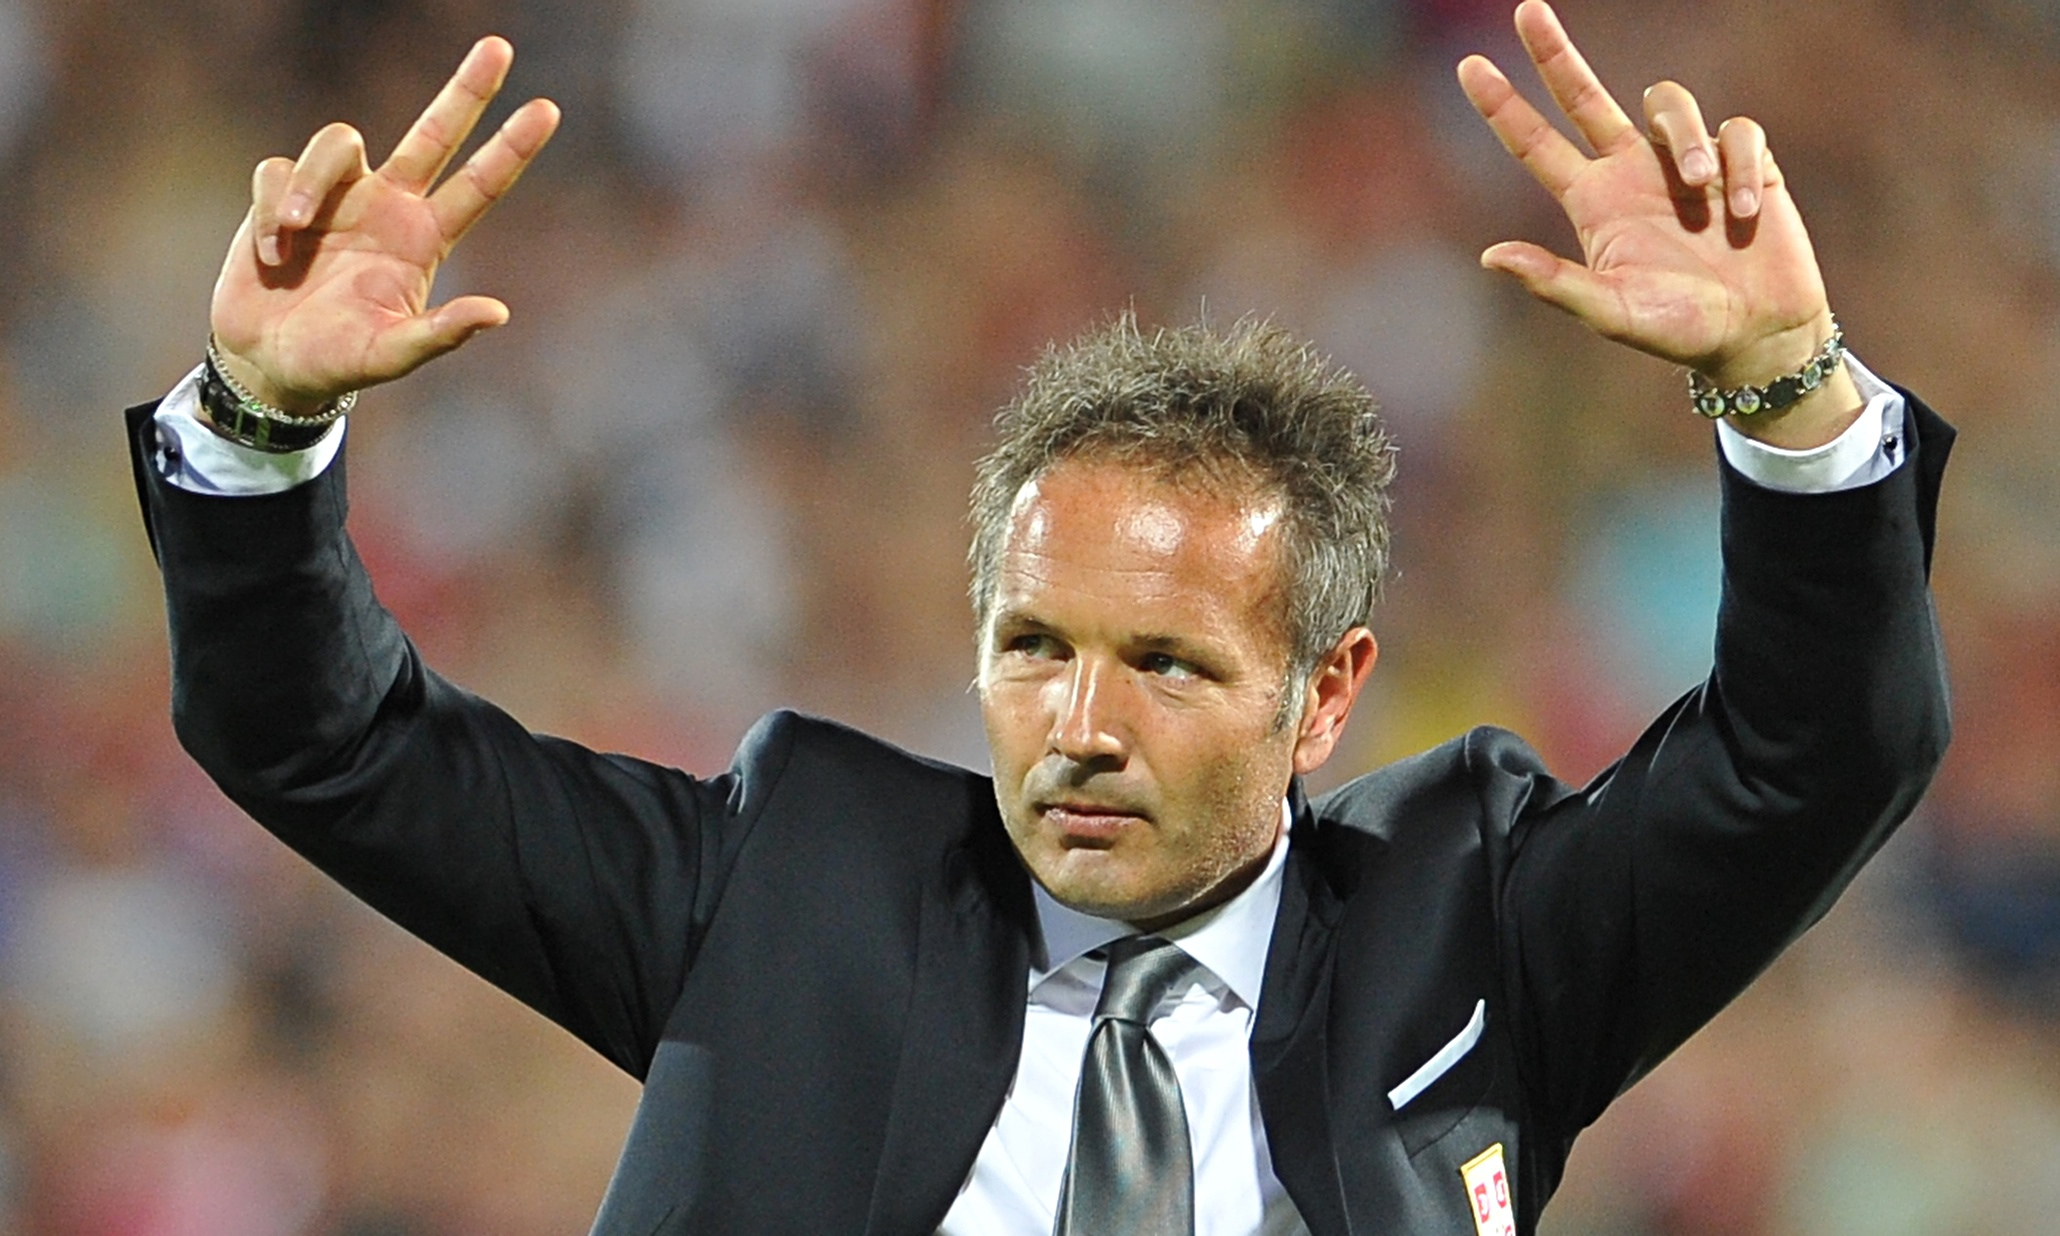 http://static.guim.co.uk/sys-images/Sport/Pix/columnists/2015/6/4/1433409115822/Sinisa-Mihajlovic-009.jpg